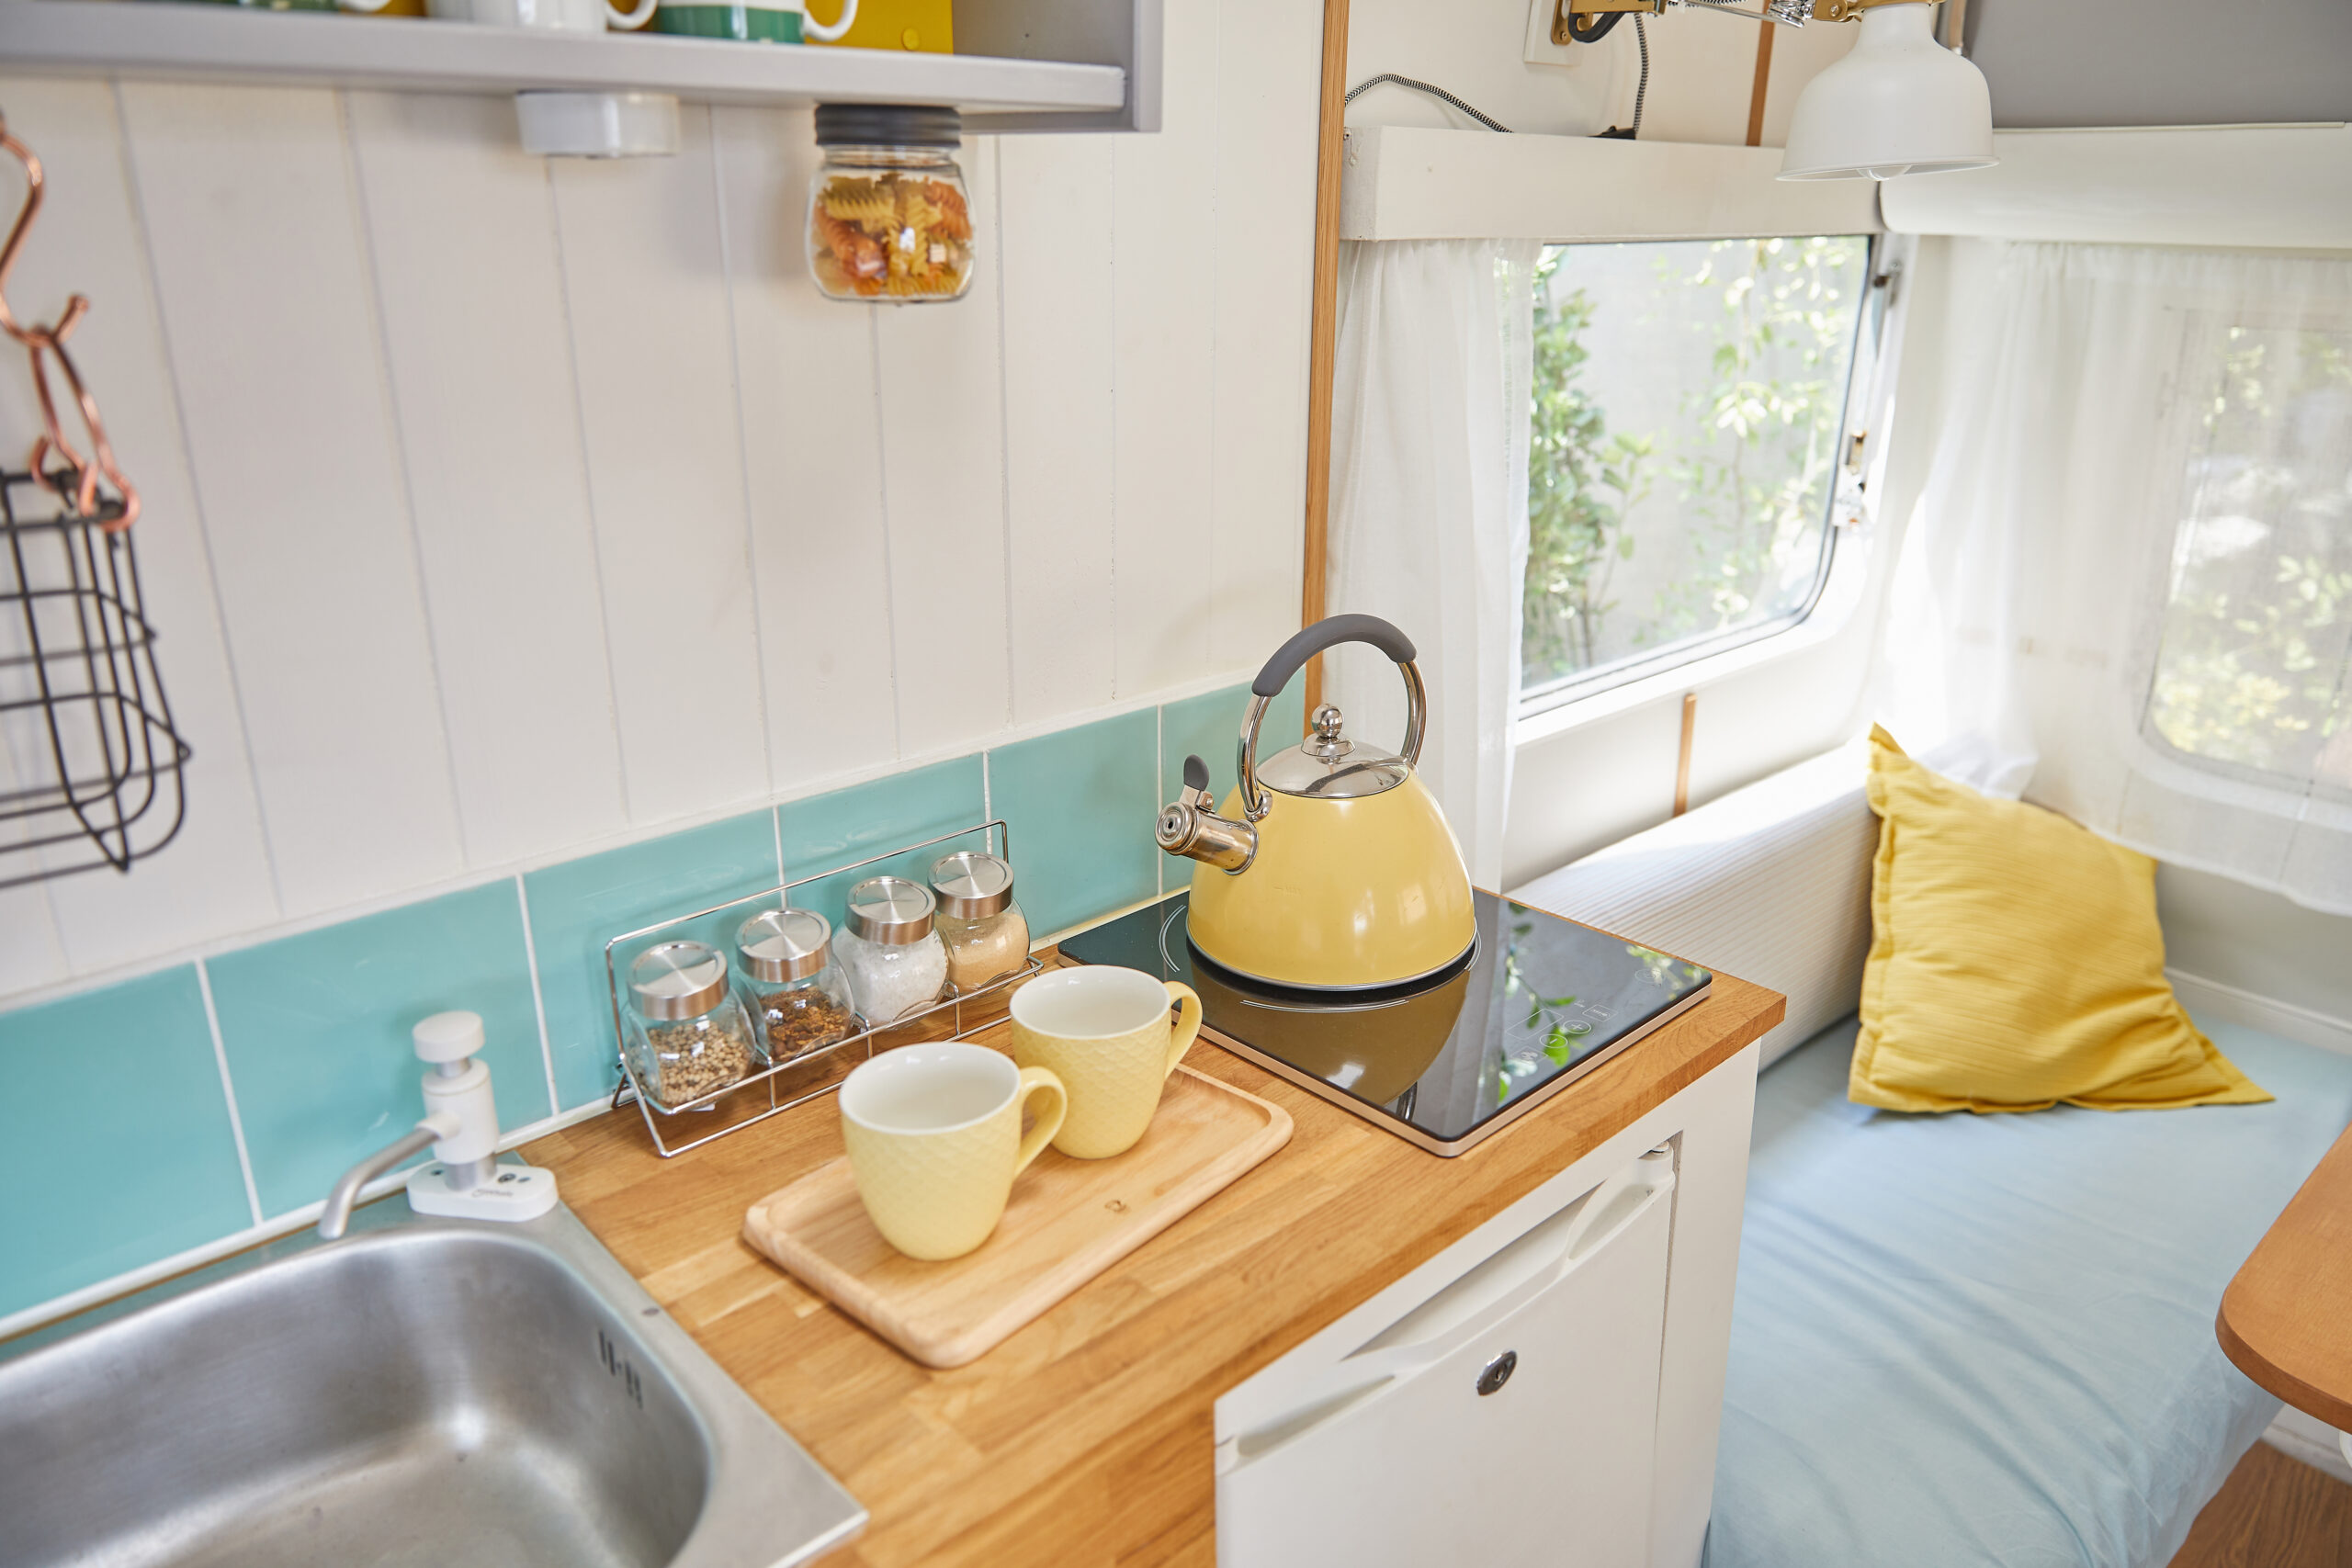 a wooden lightweight countertop material for RV interior